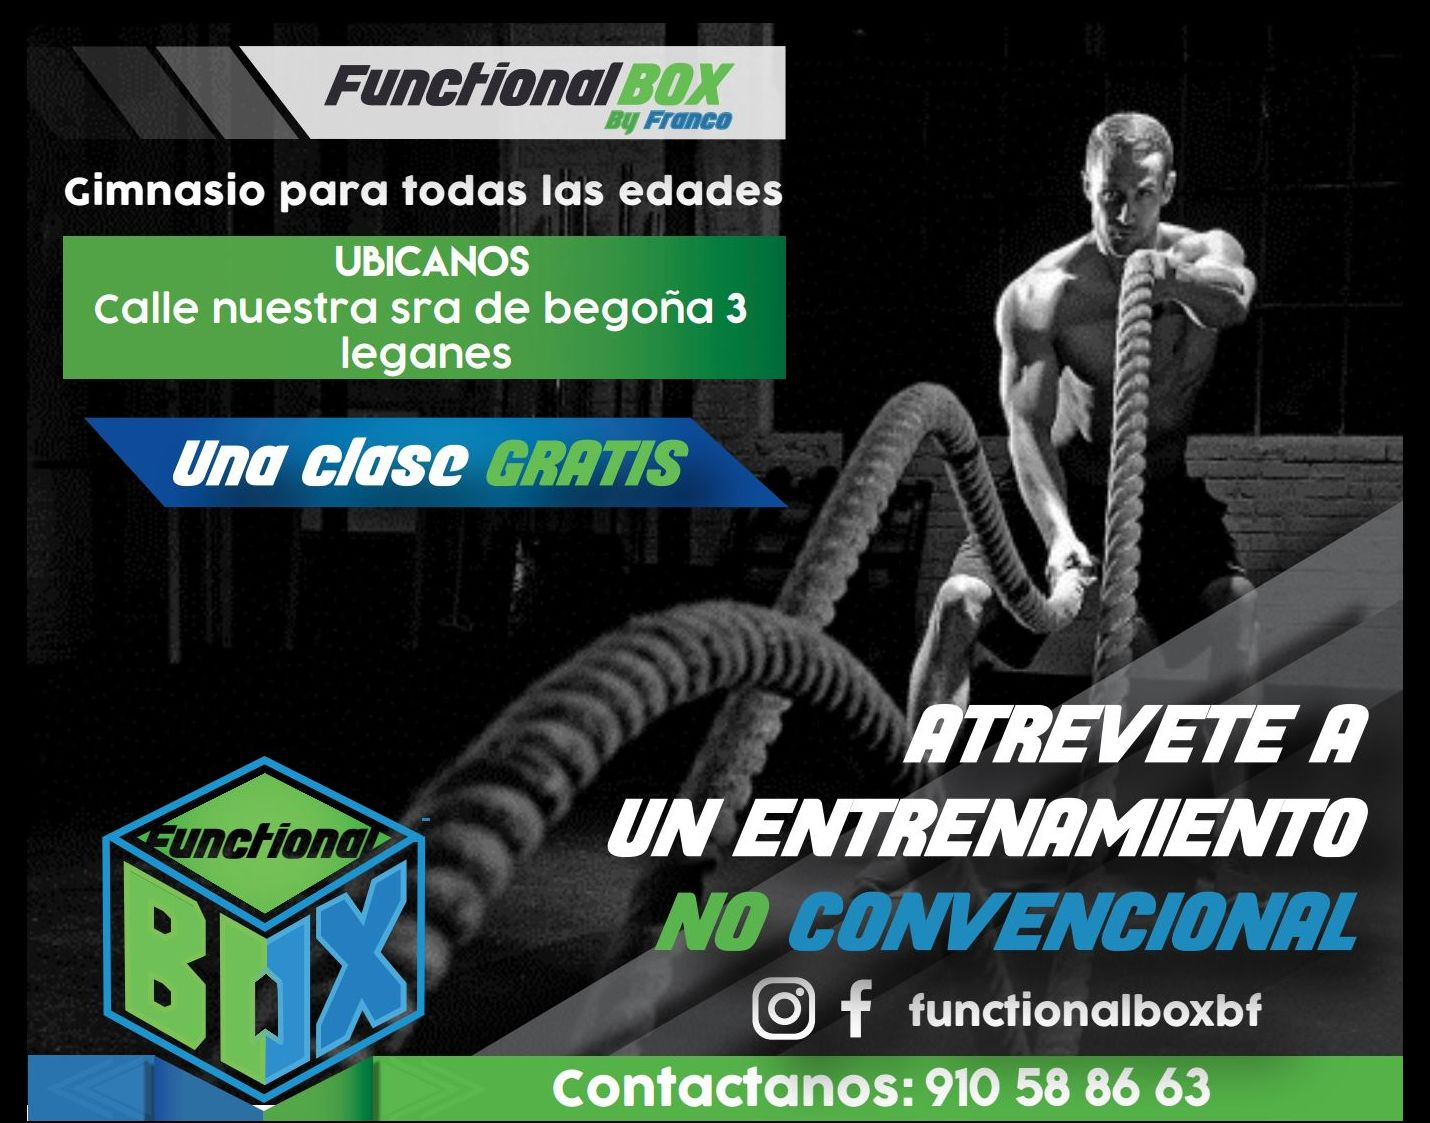 Gimnasio Functional Box by Franco